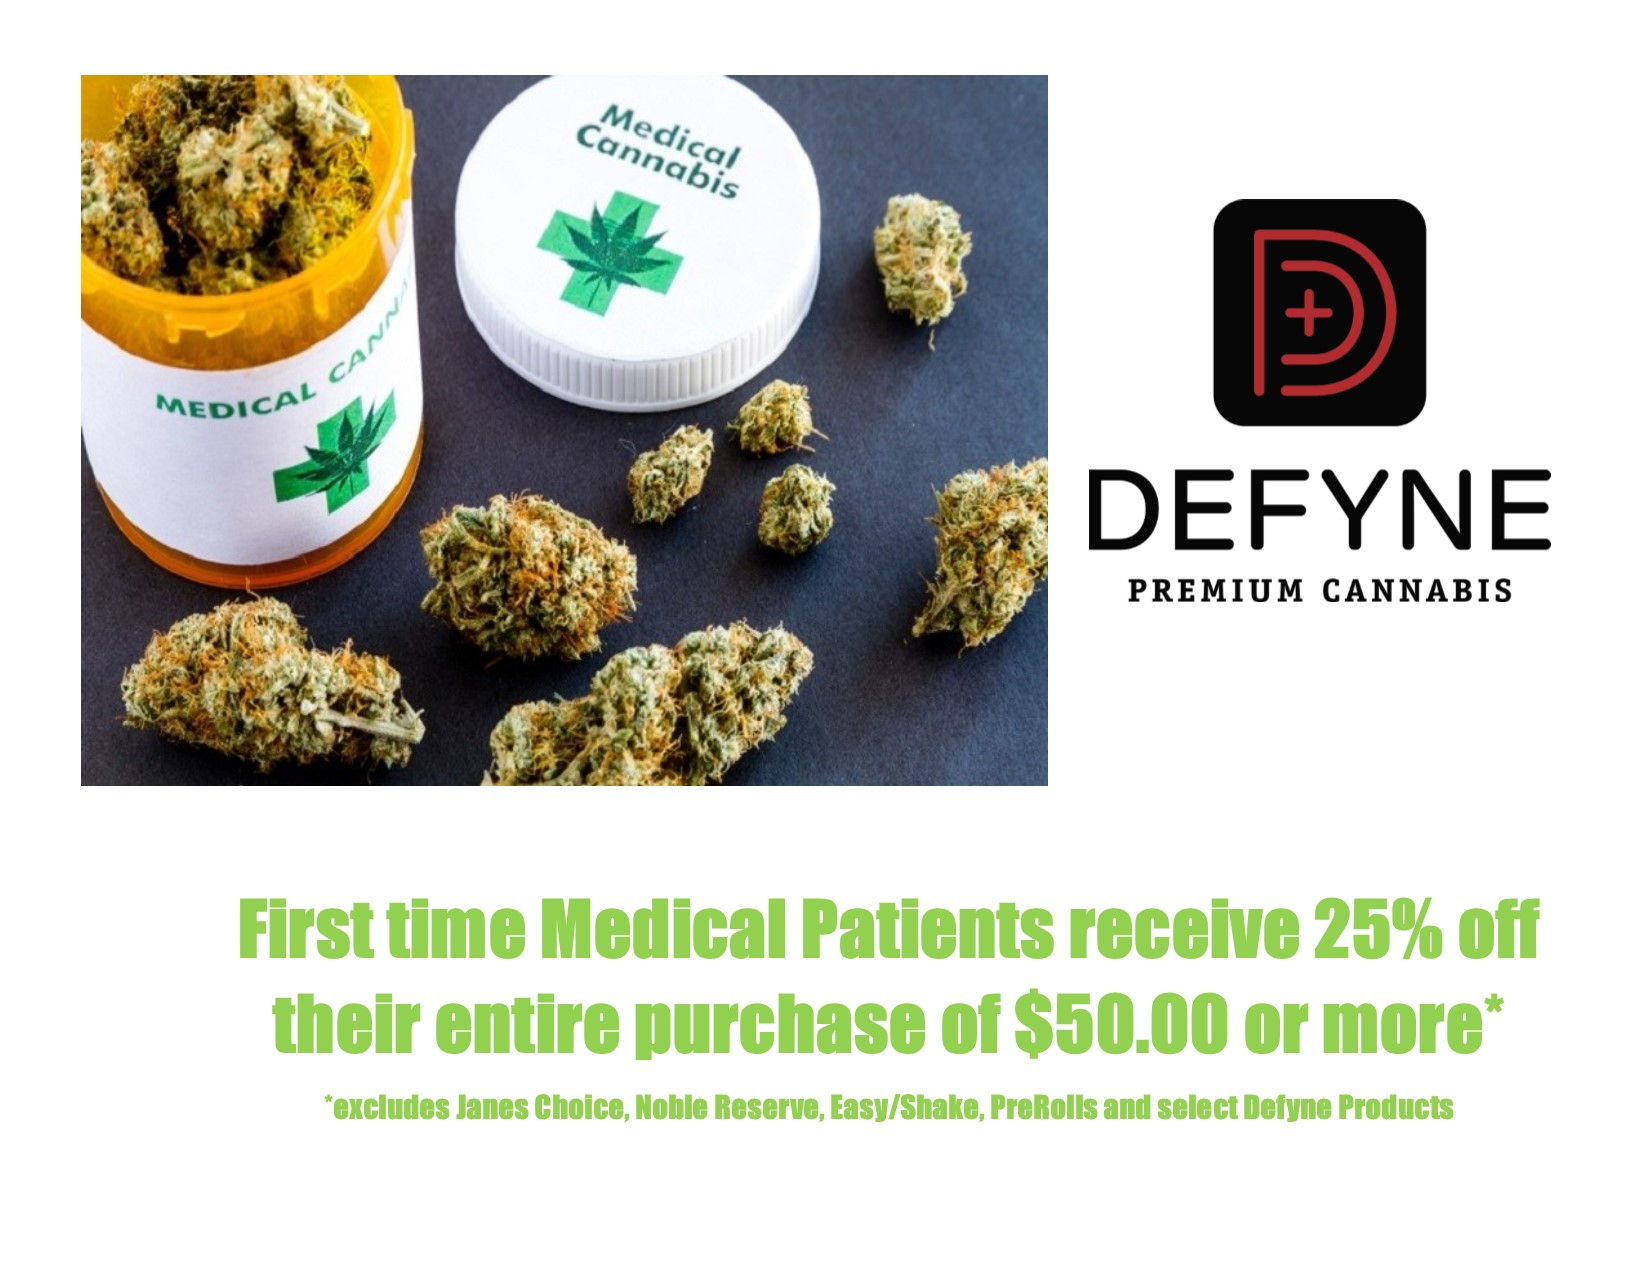 All first time Medical Patients receive 25% off their first purchase. -